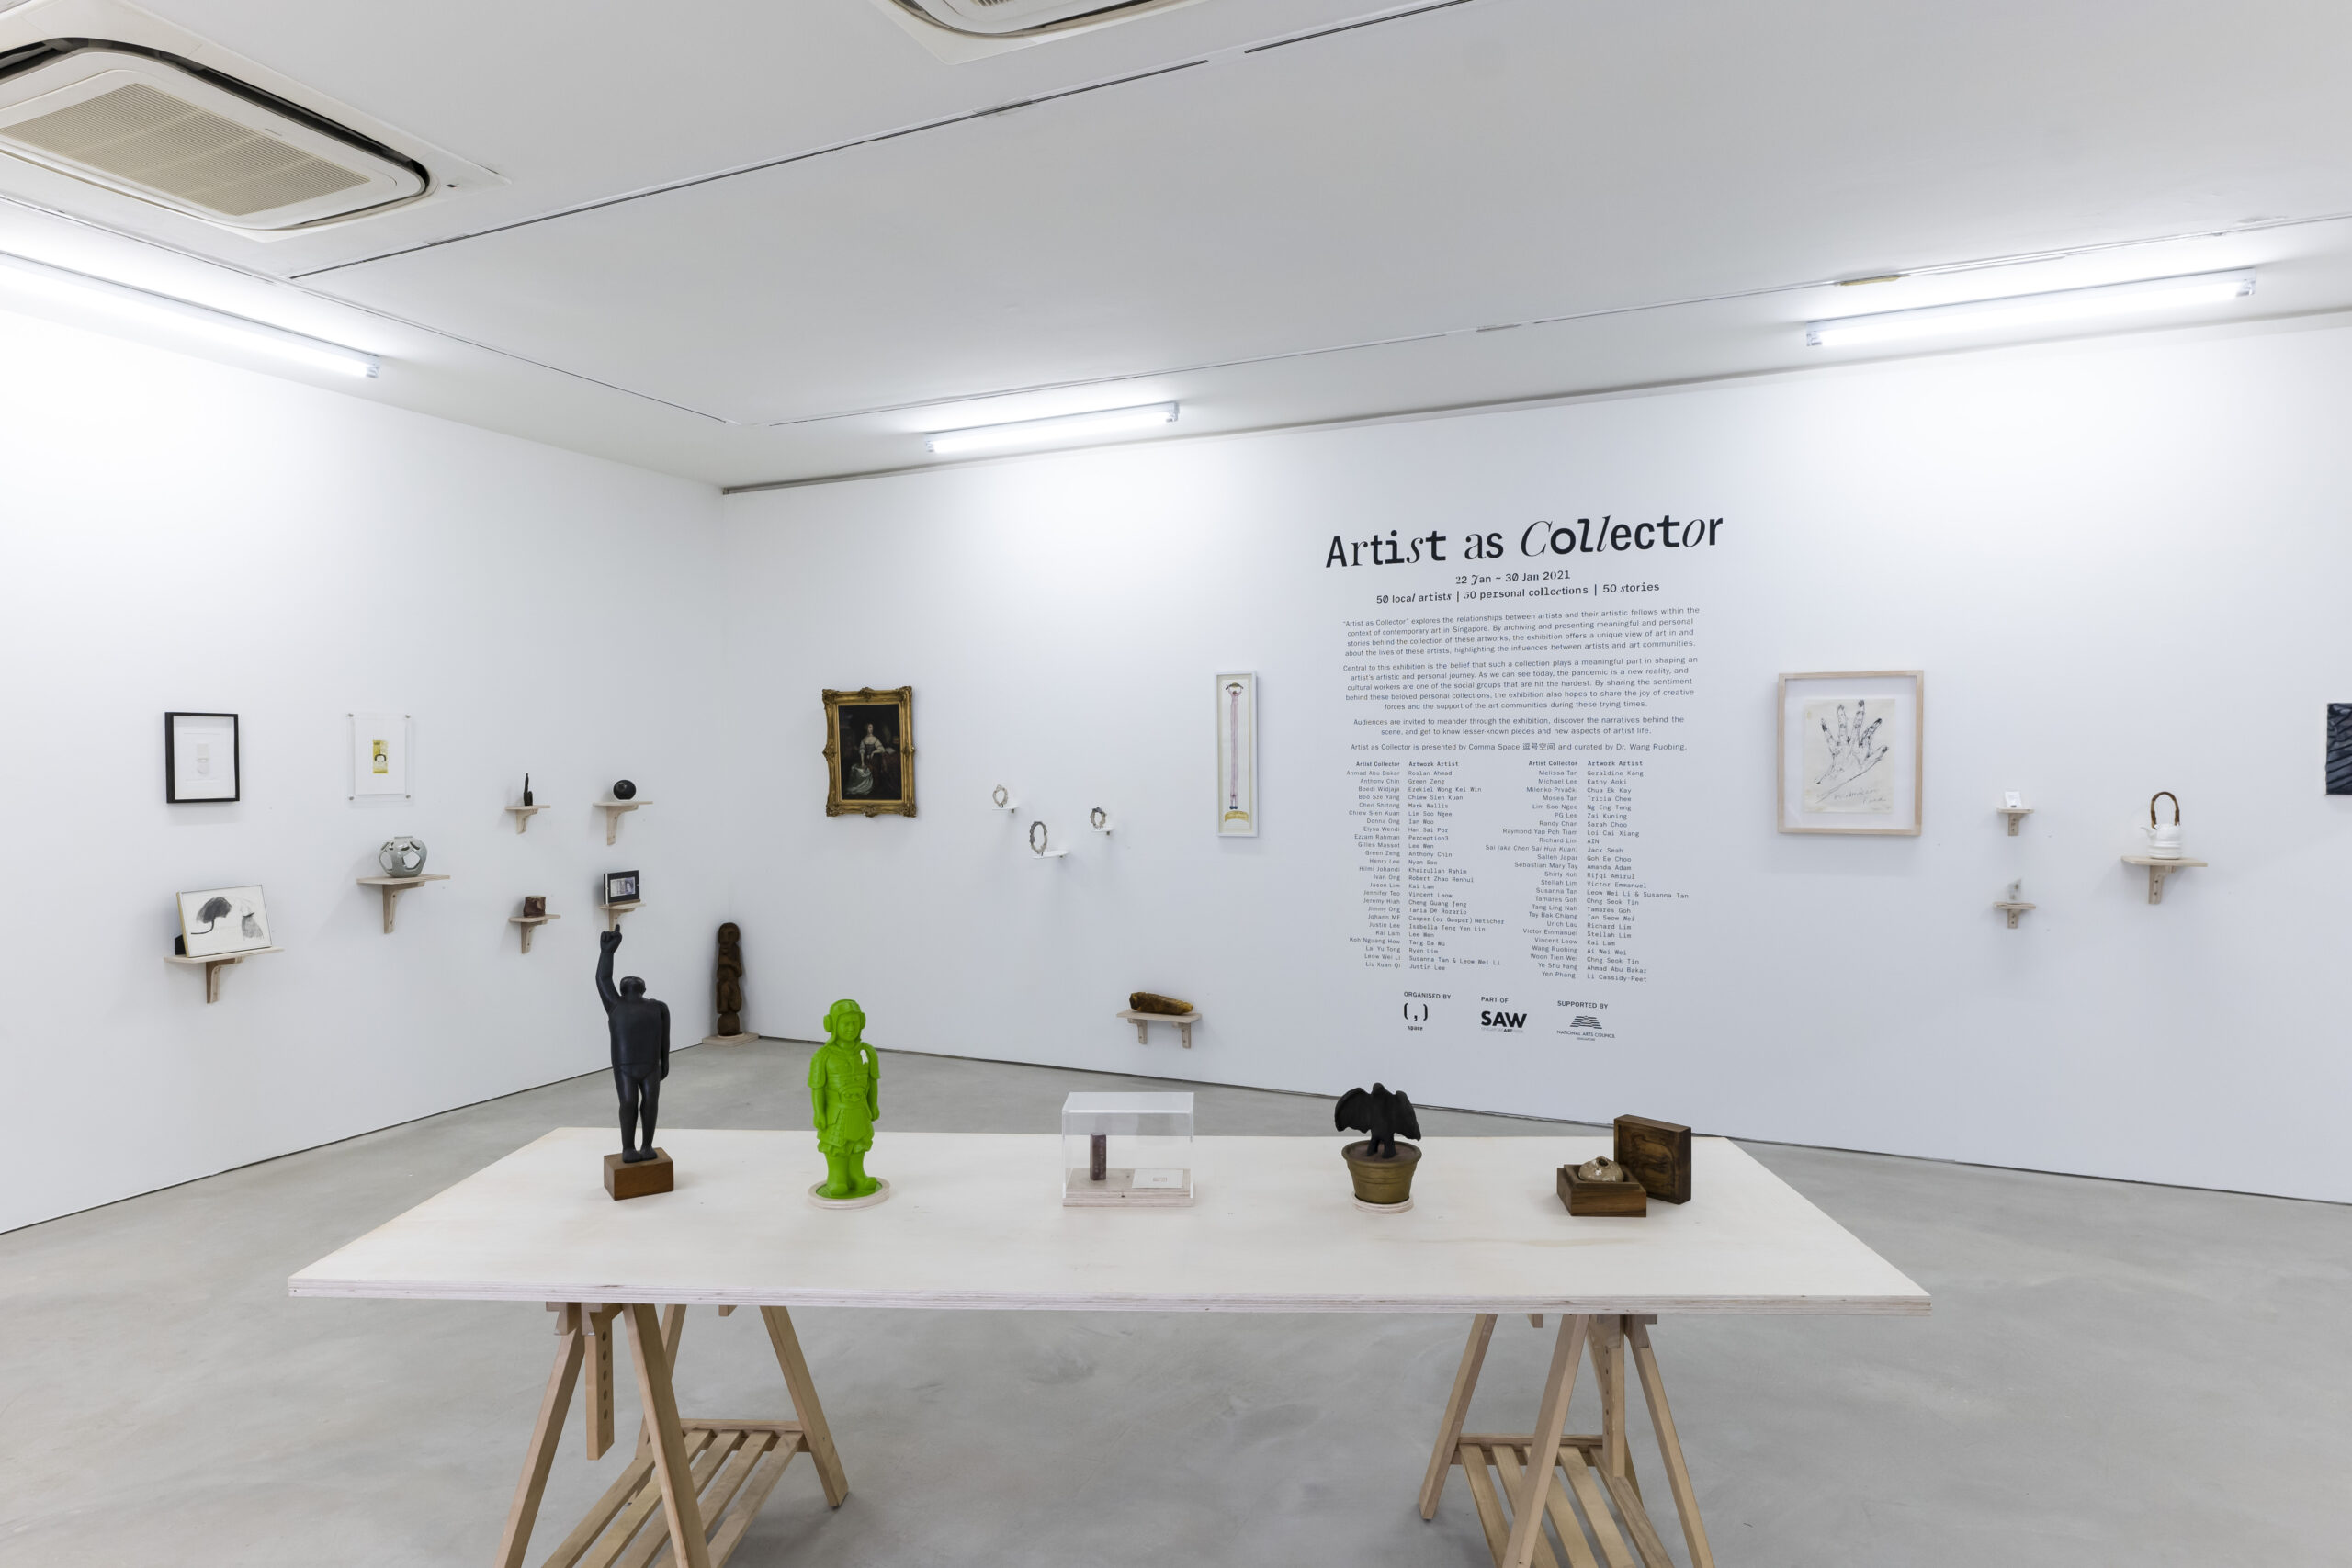 Artist as Collector_exhibition view 02